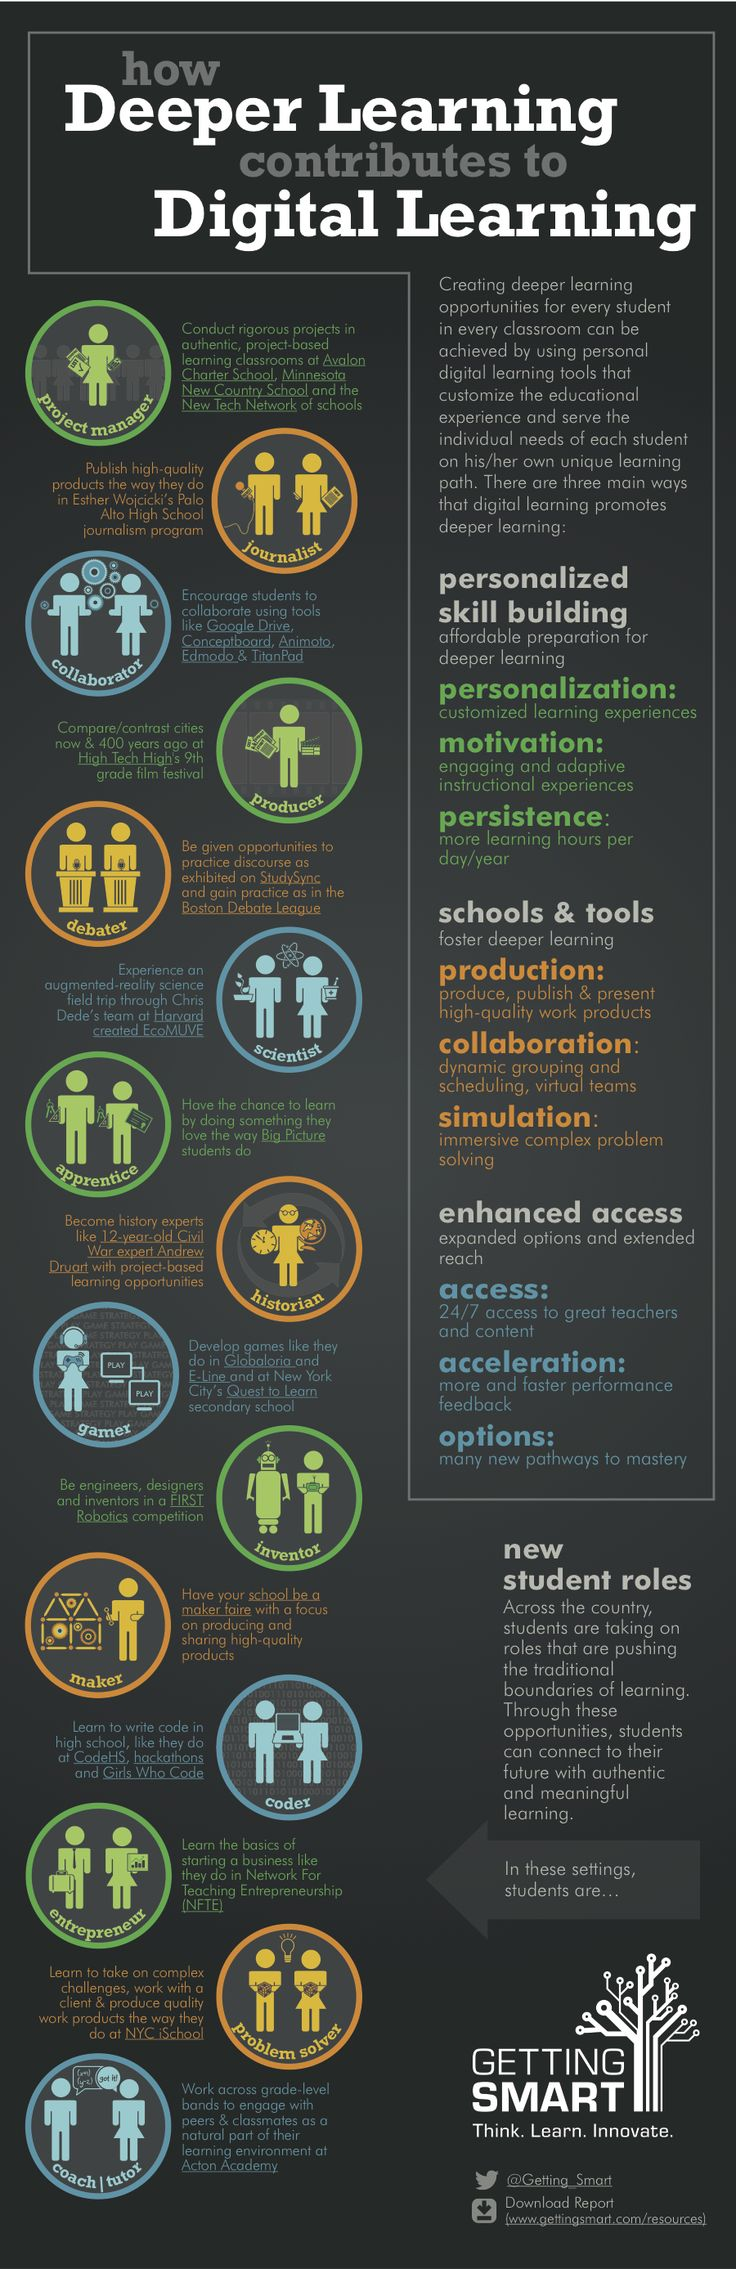 How Deeper Learning Contributes to Digital Learning.